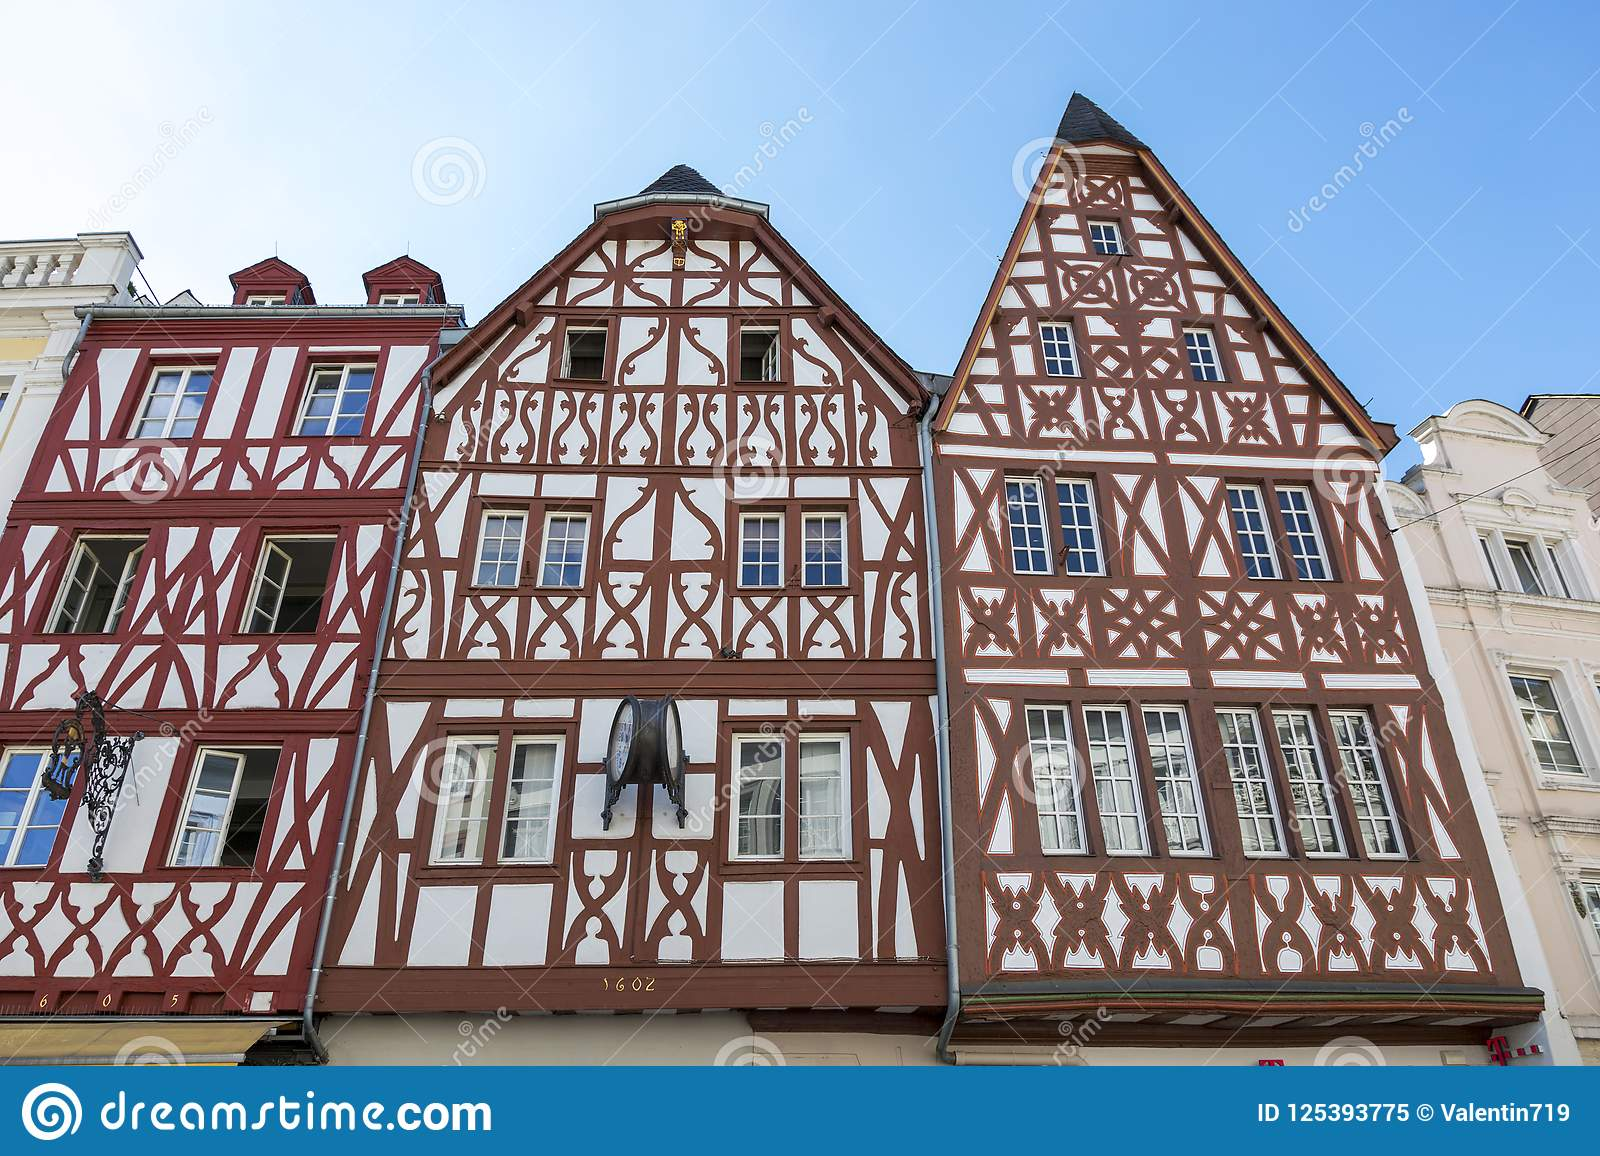 Half-timbered houses: what is it, construction technology 38